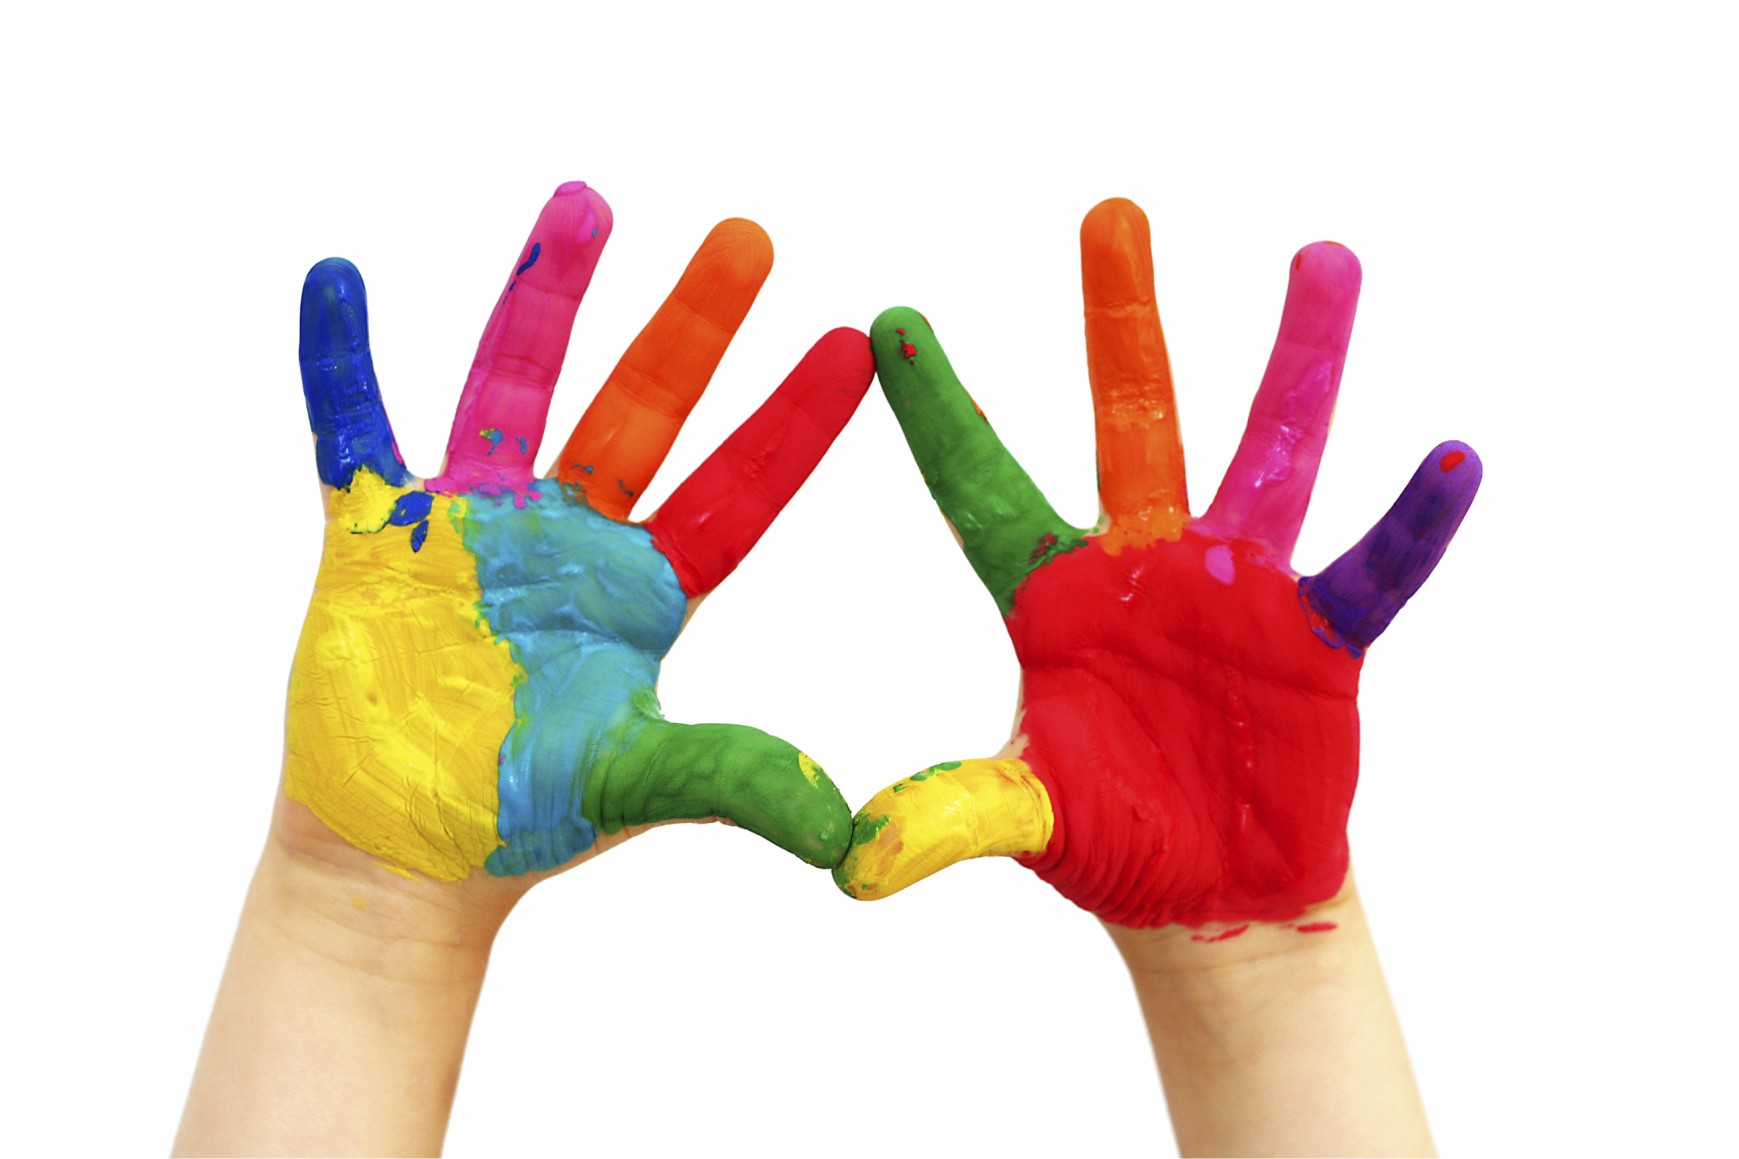 1739x1159 Kids Hands Clipart Hands Kid Hand Clipart Free Images